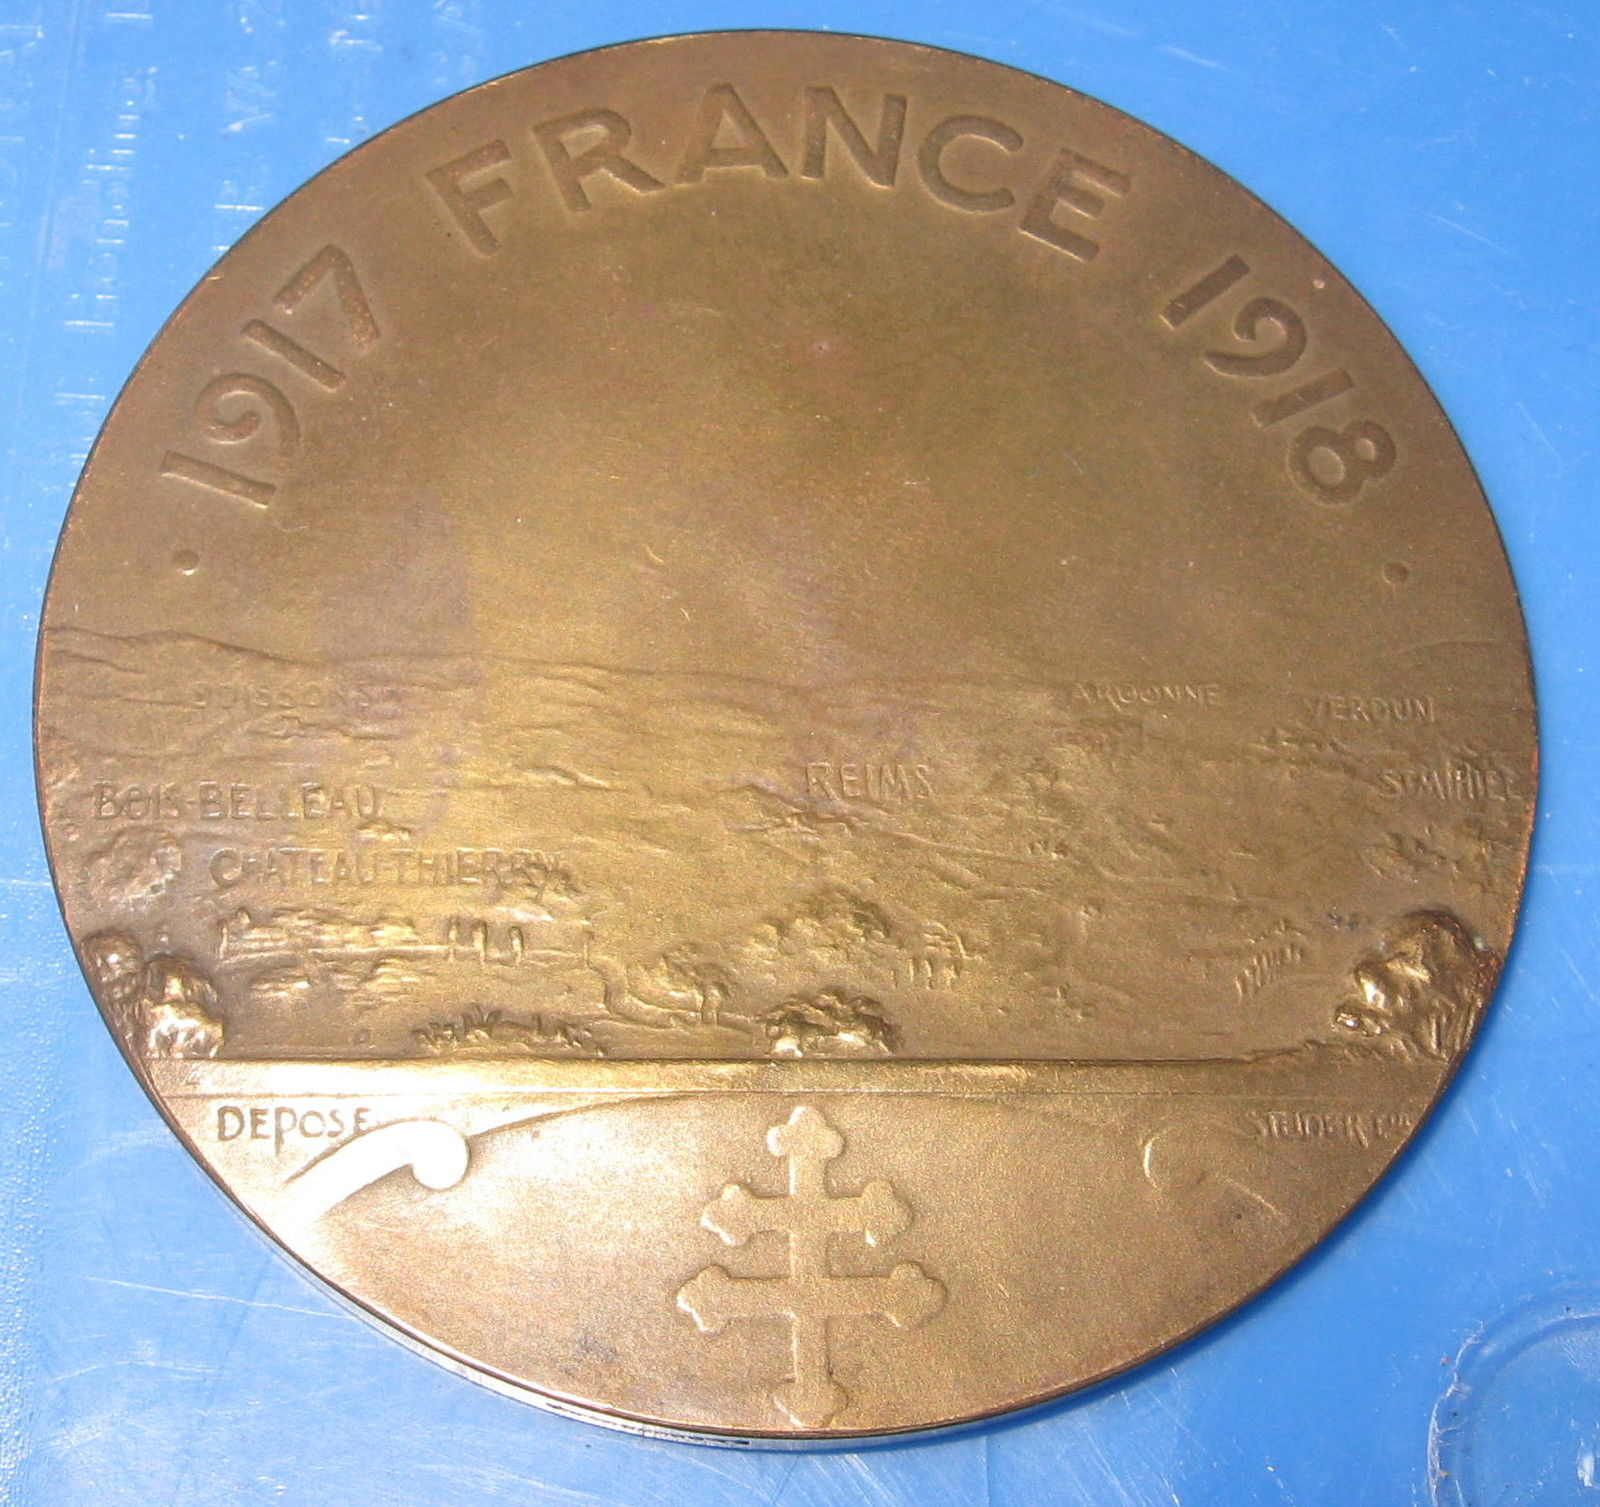 79th Division Medal - back